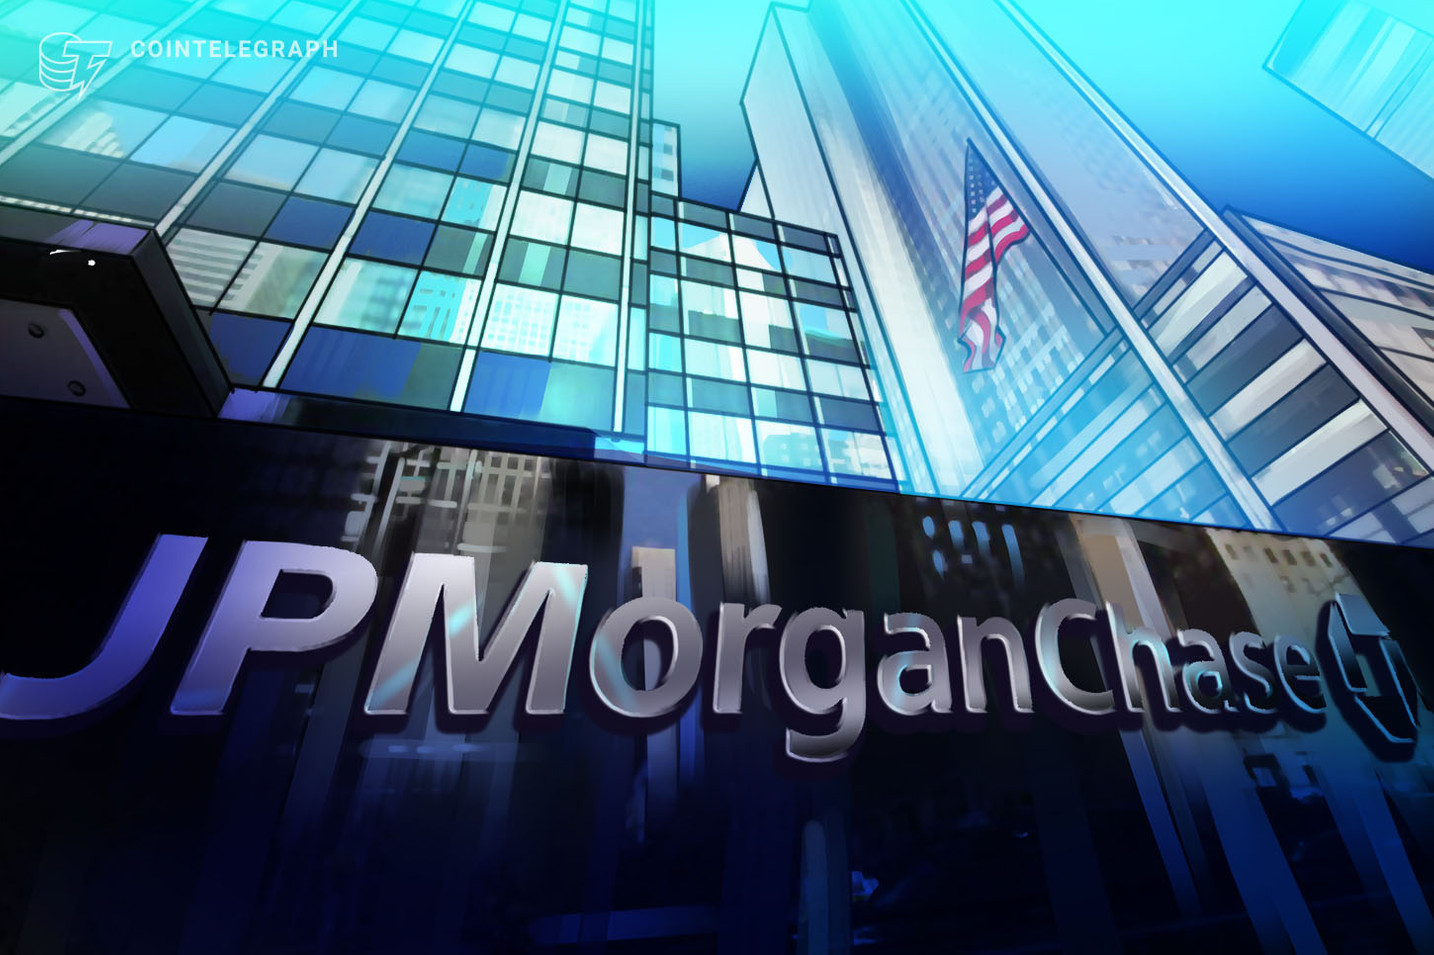 Digital Currencies Could Threaten US Geopolitical Power, Warns JPMorgan